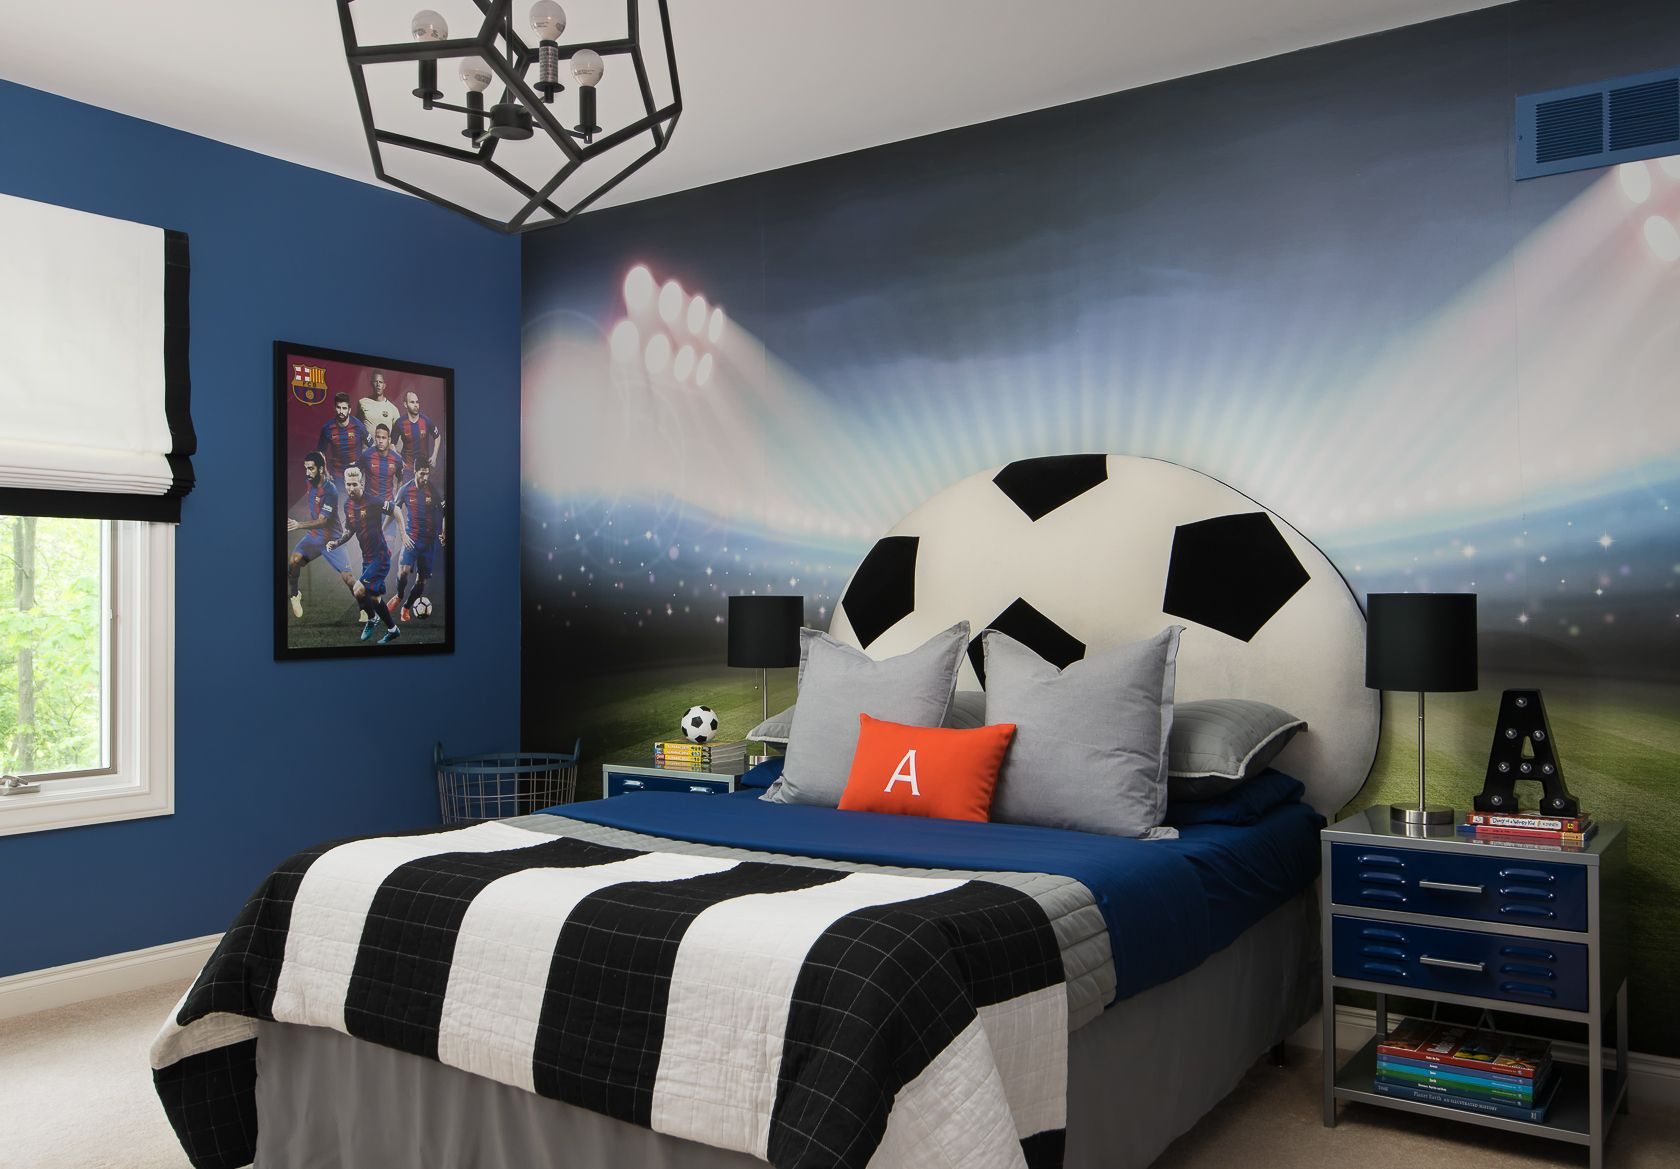 Boy bedroom decor with main theme